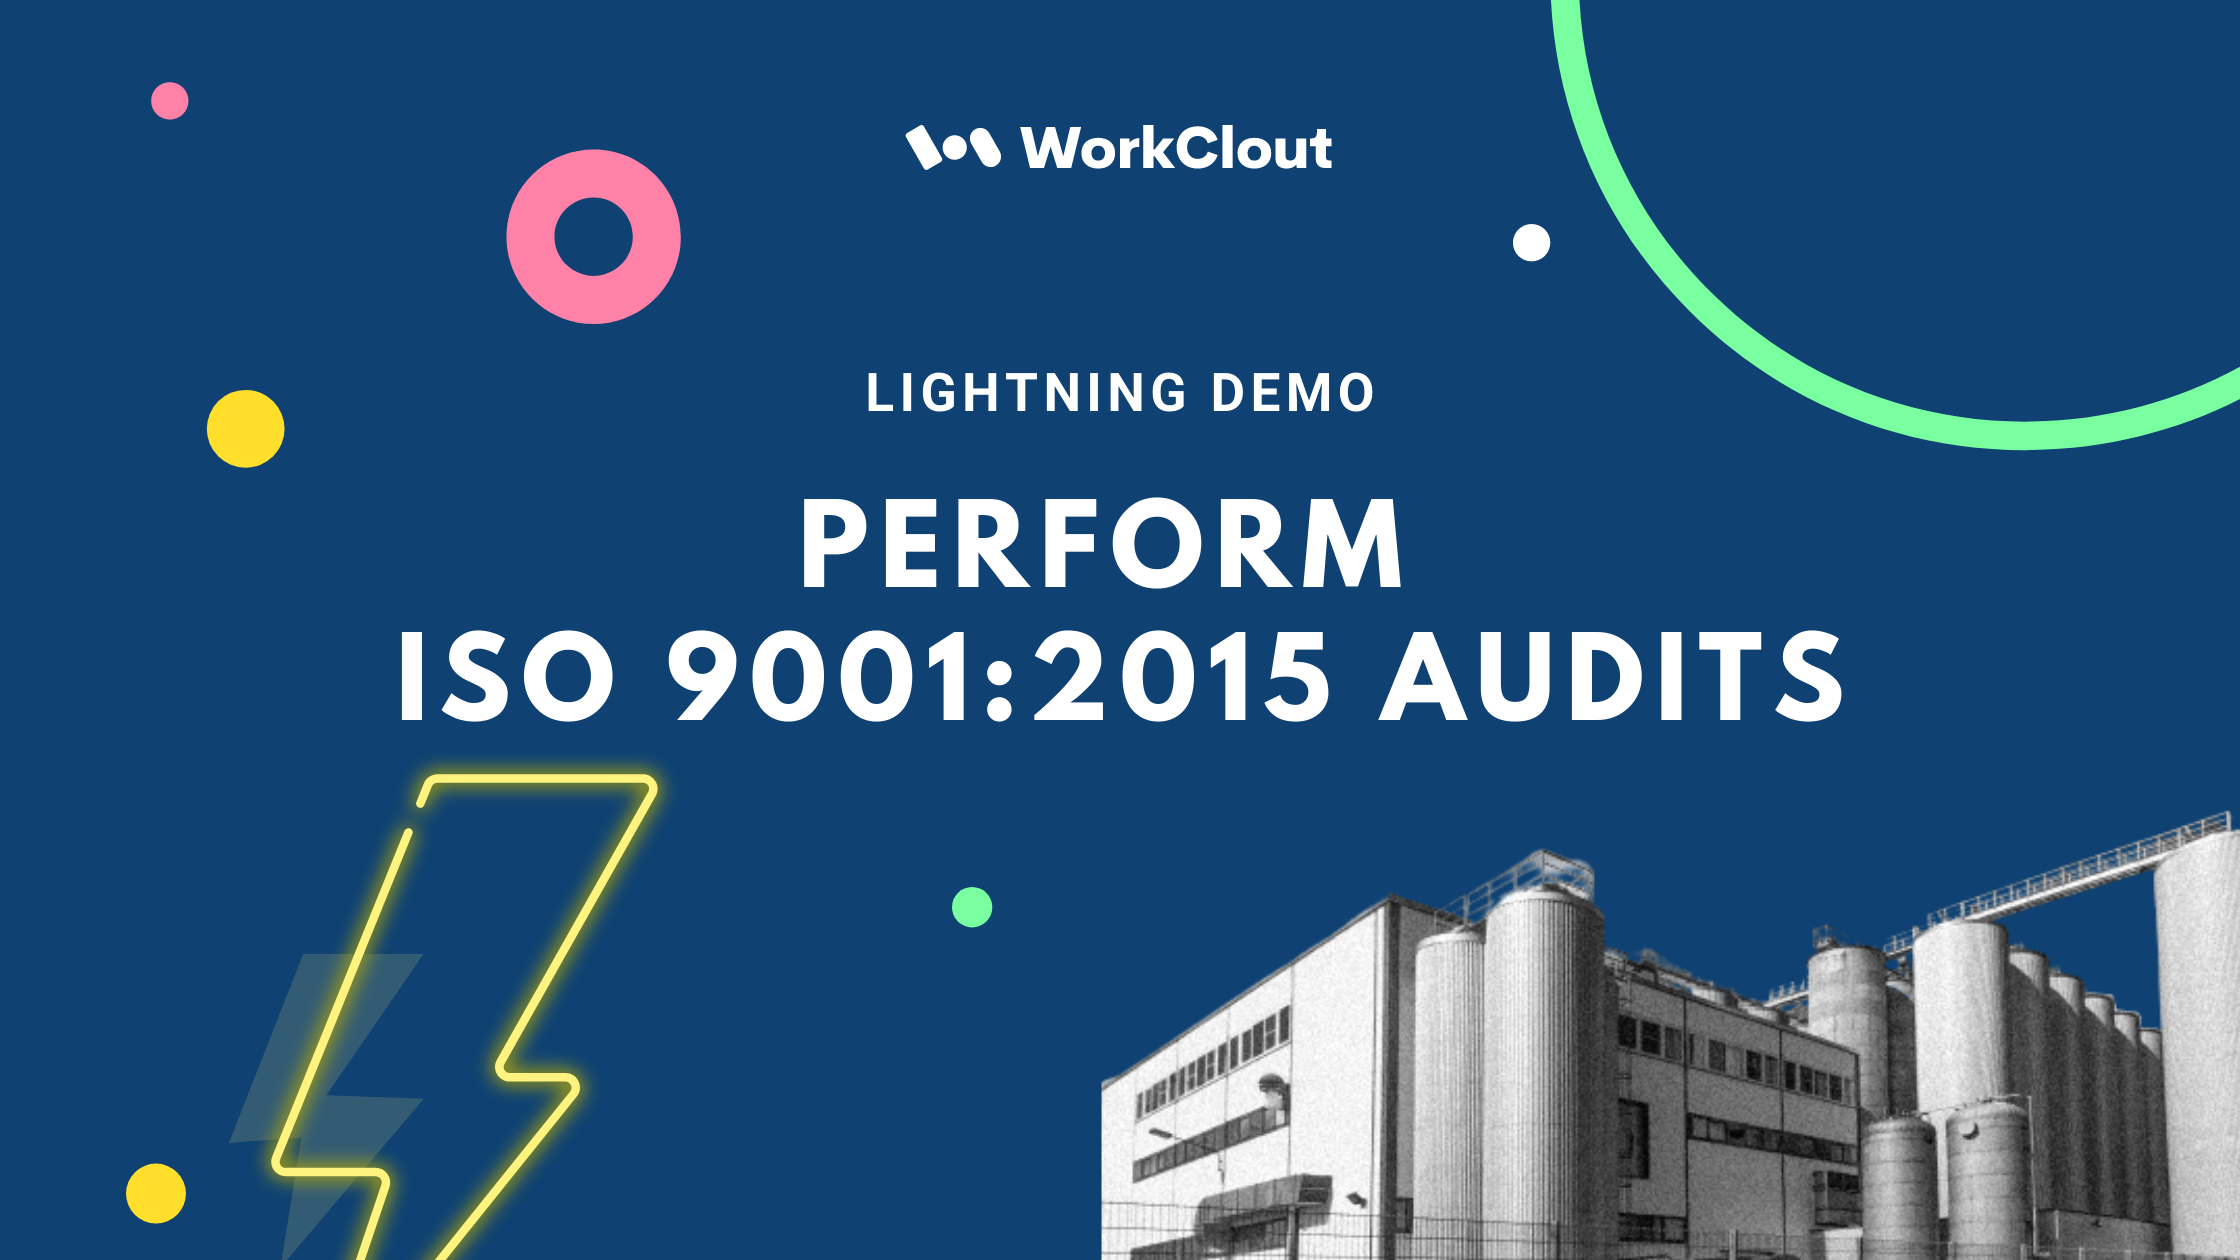 Lightning Demo - Performing ISO 9001:2015 Audits